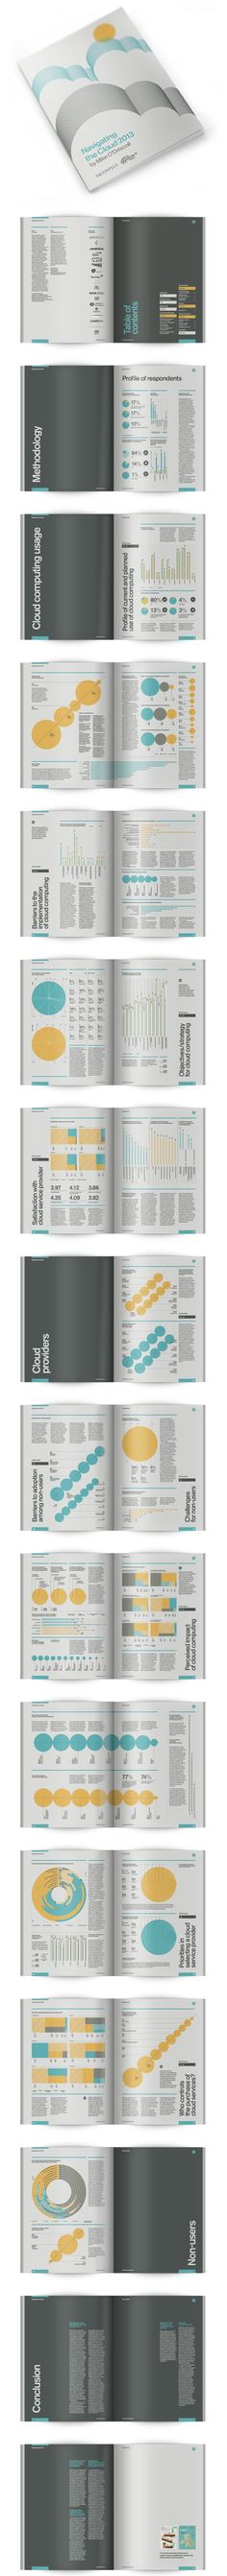 Infographic Survey Navigating the Cloud on Behance #infographics